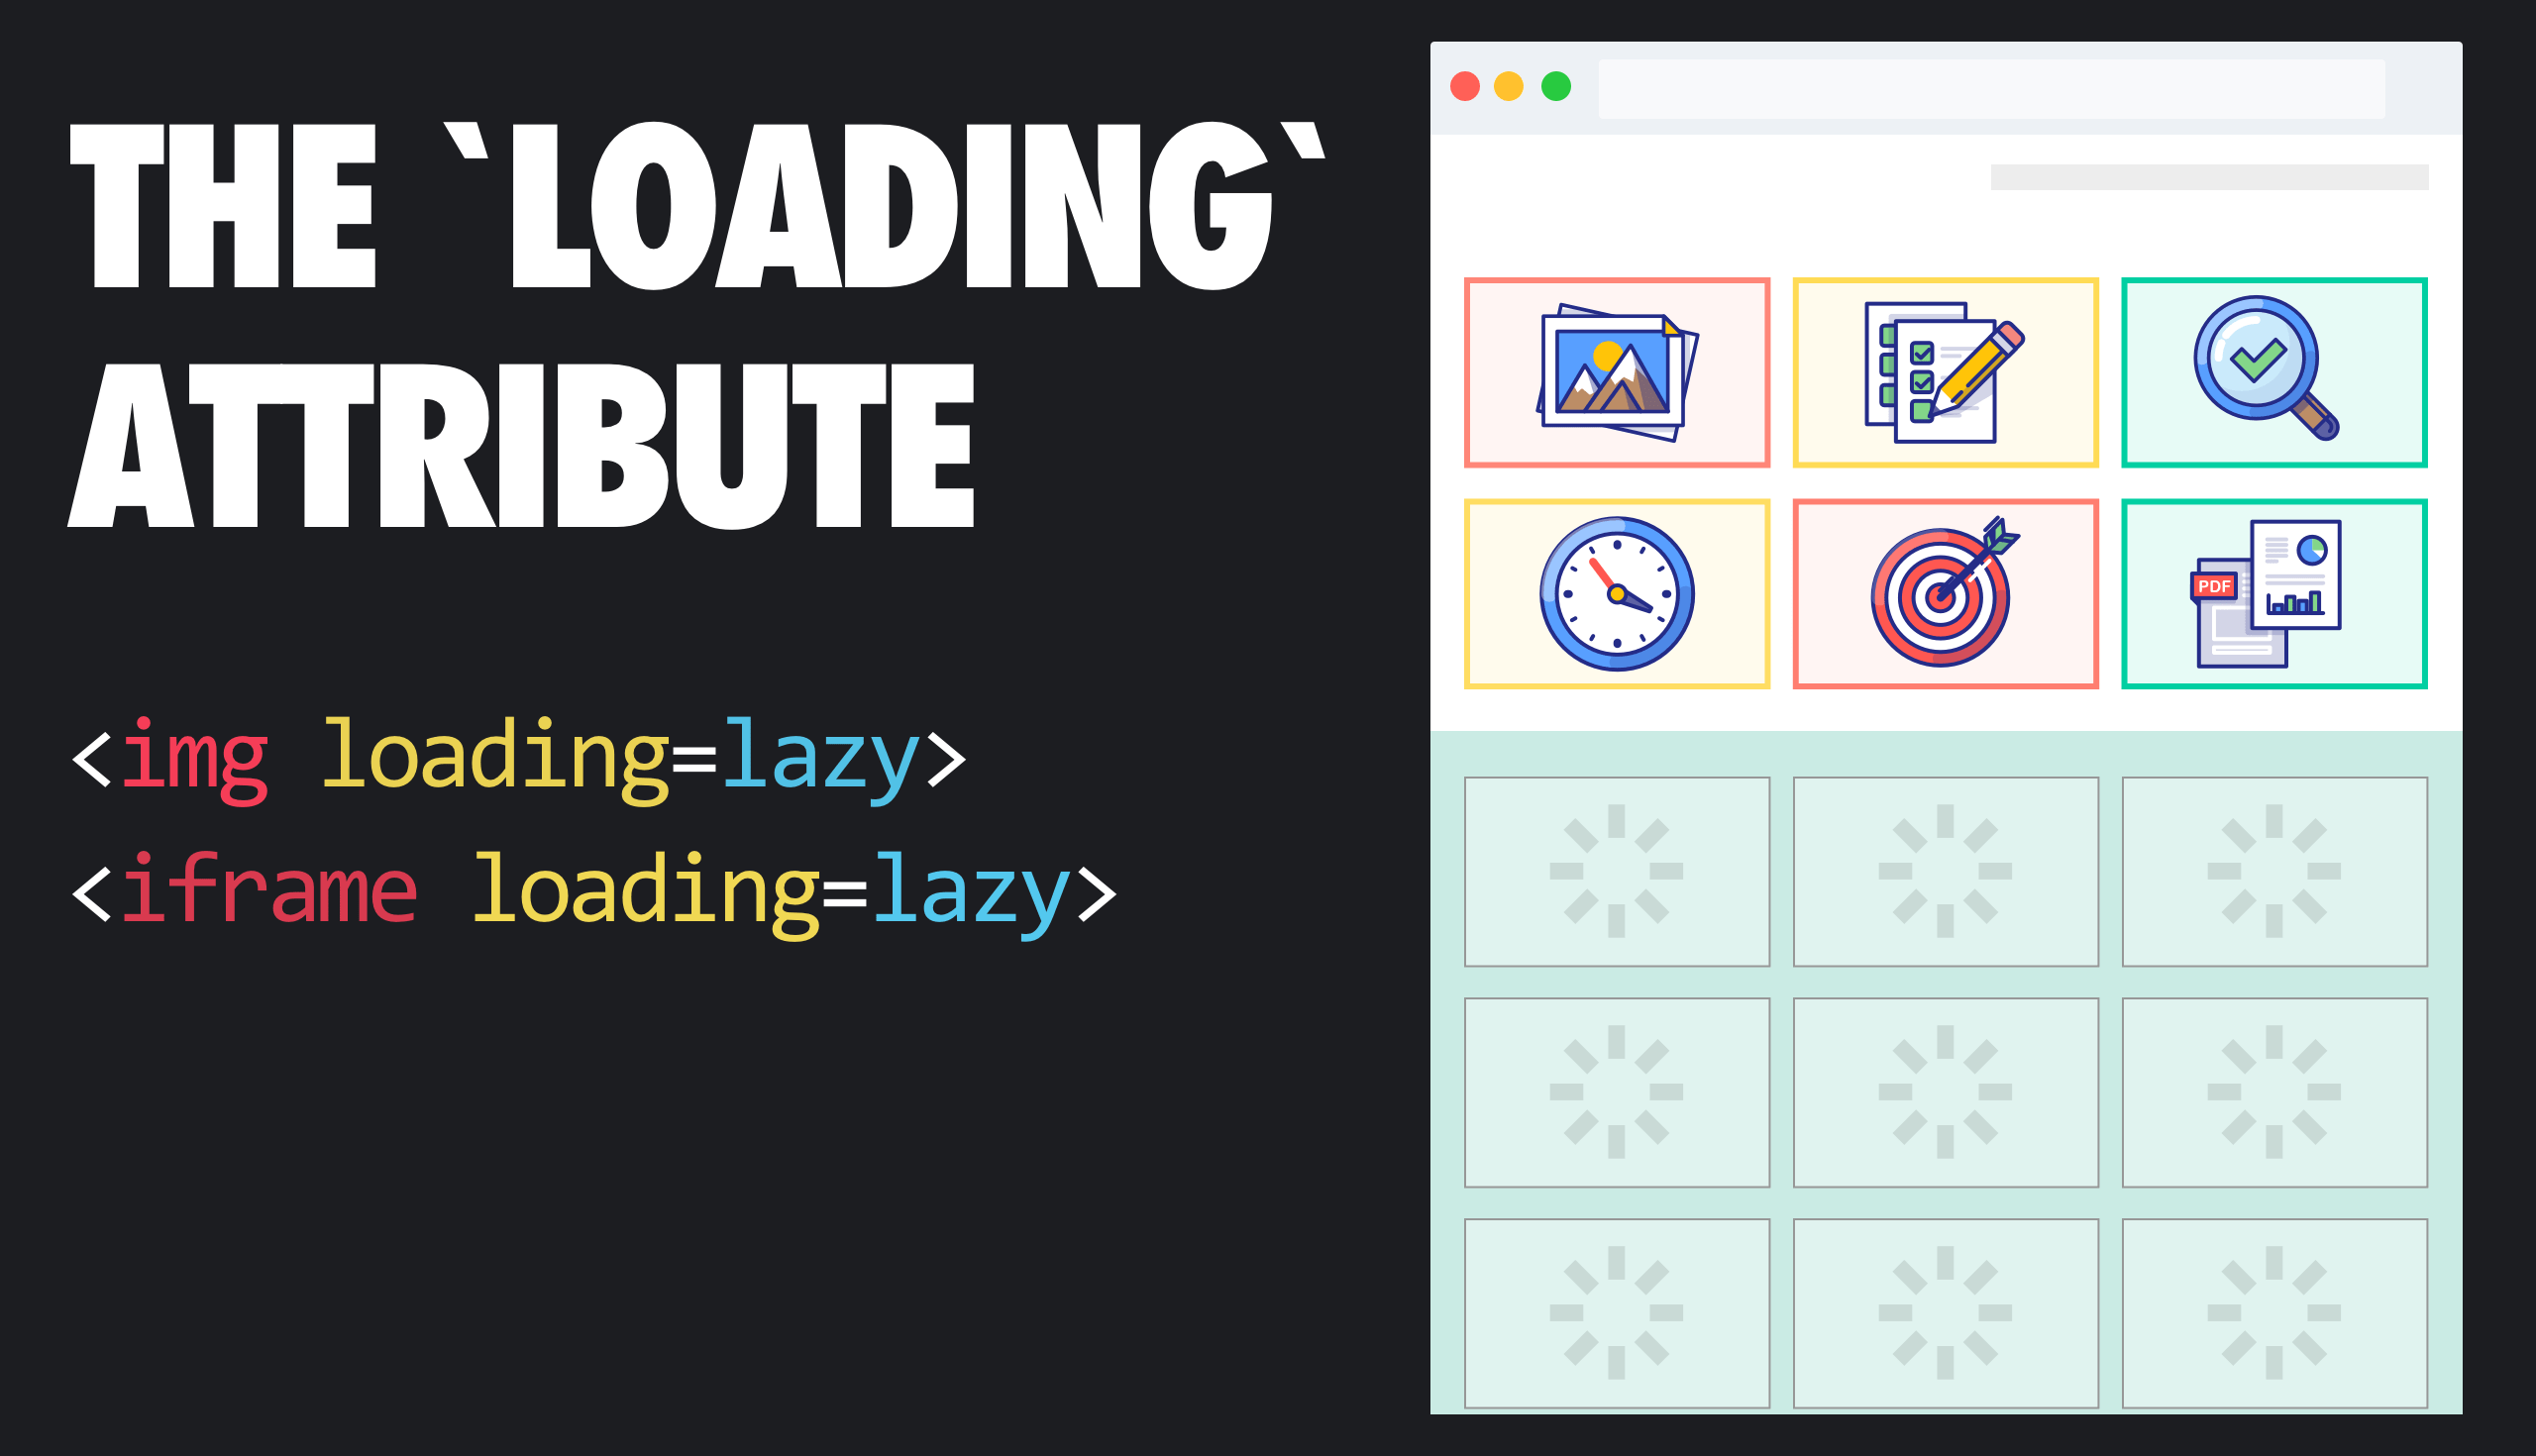 loading-attribute@2x.png